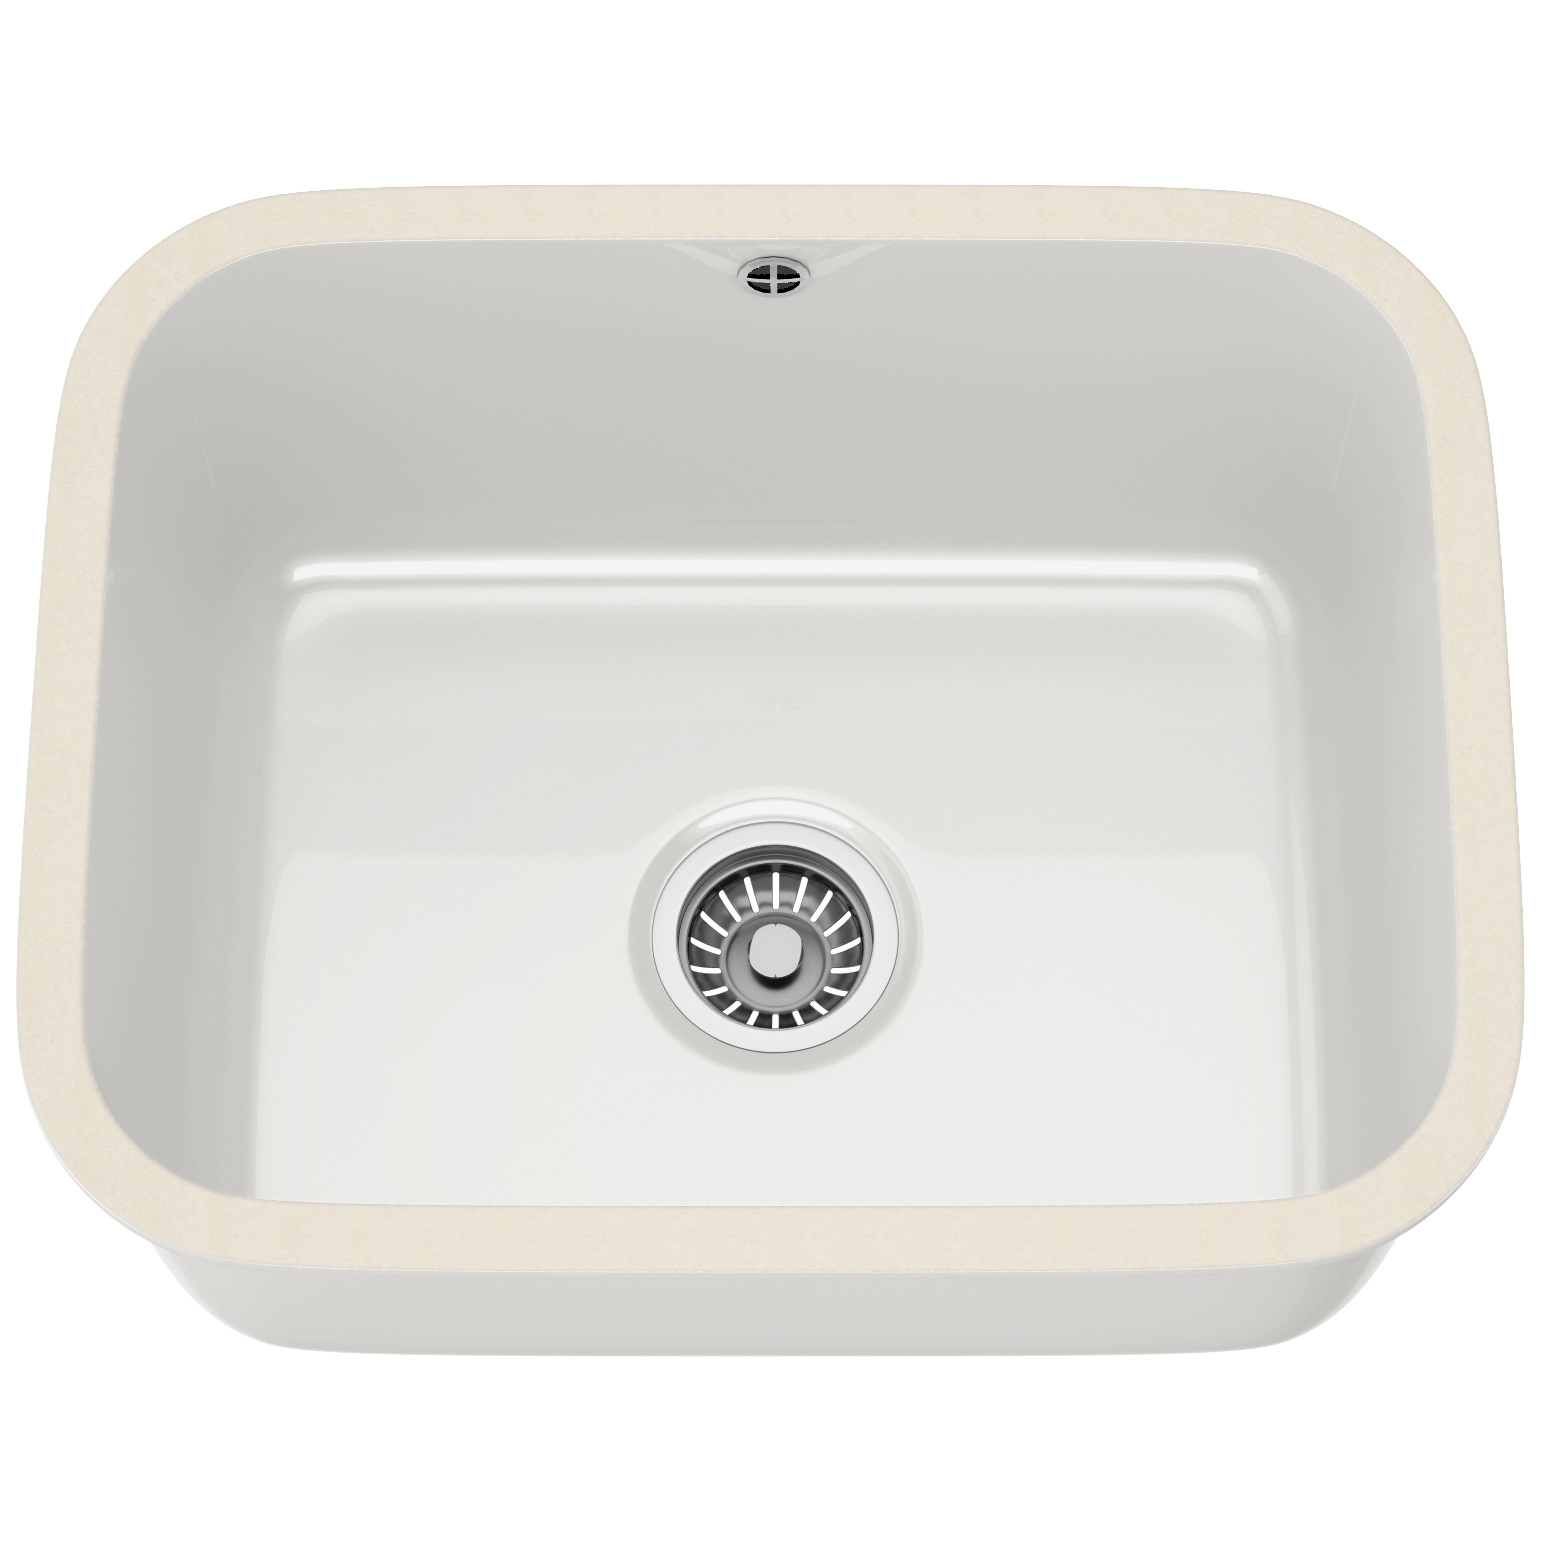 Franke V And B VBK 110 50 Ceramic White 1.0 Bowl Undermount Sink 126 ...